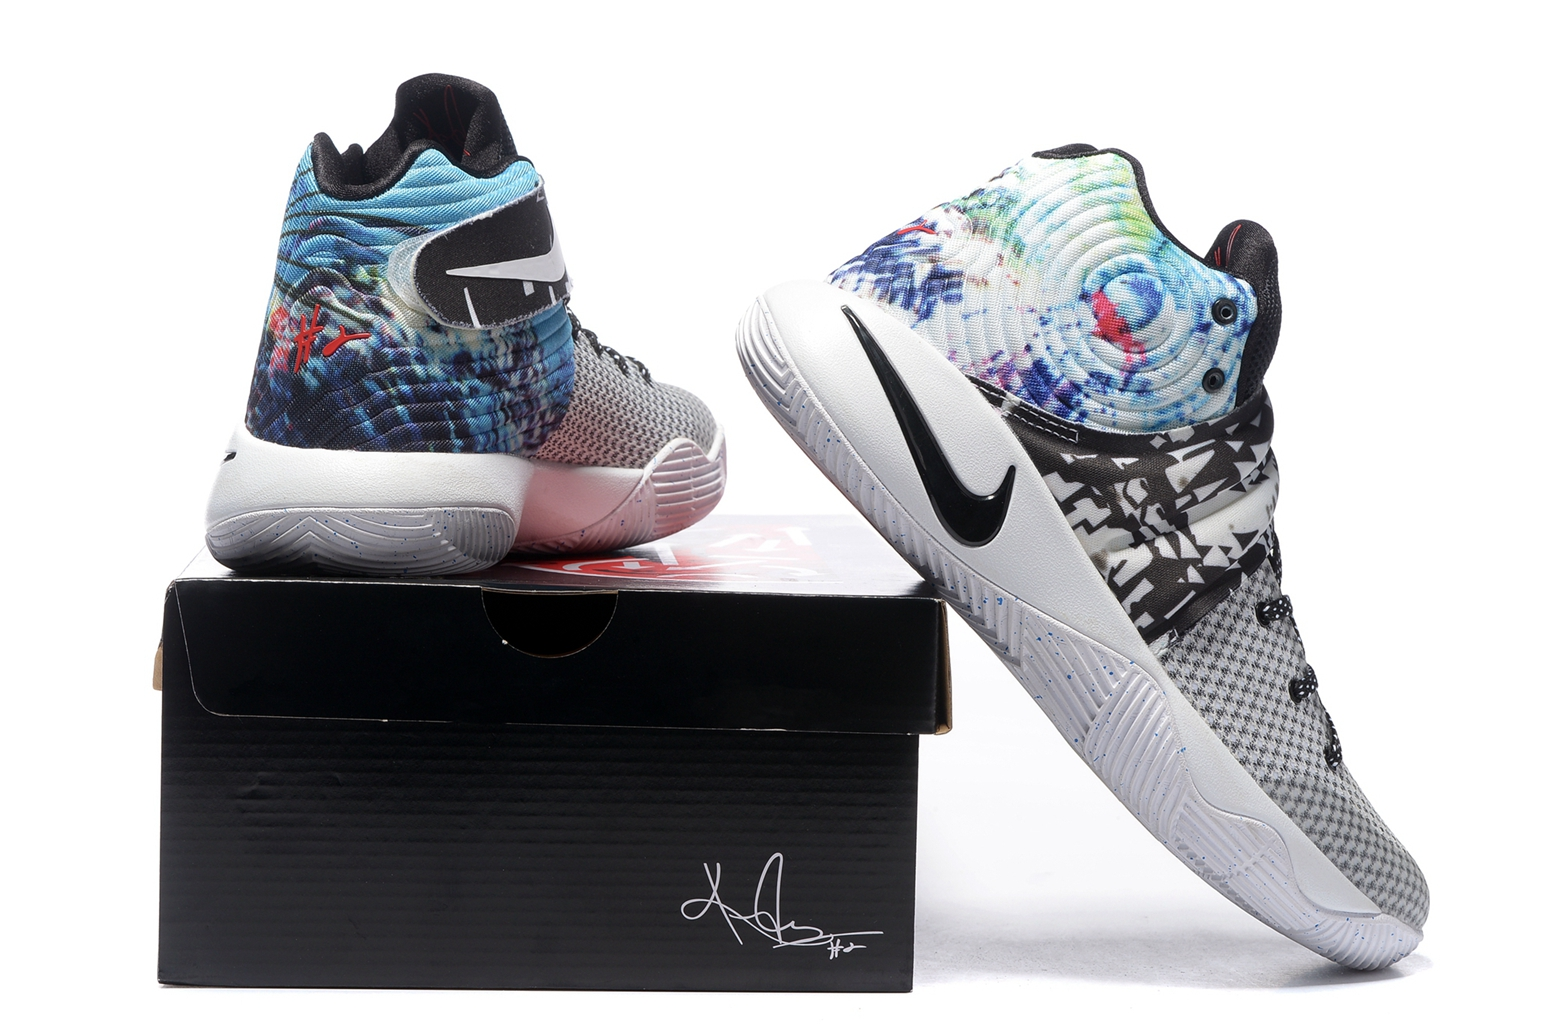 low cost 6d632 713a0 Nike Kyrie II 2 Irving Effect Tie Dye Men Shoes Basketball Sneakers  819583-901